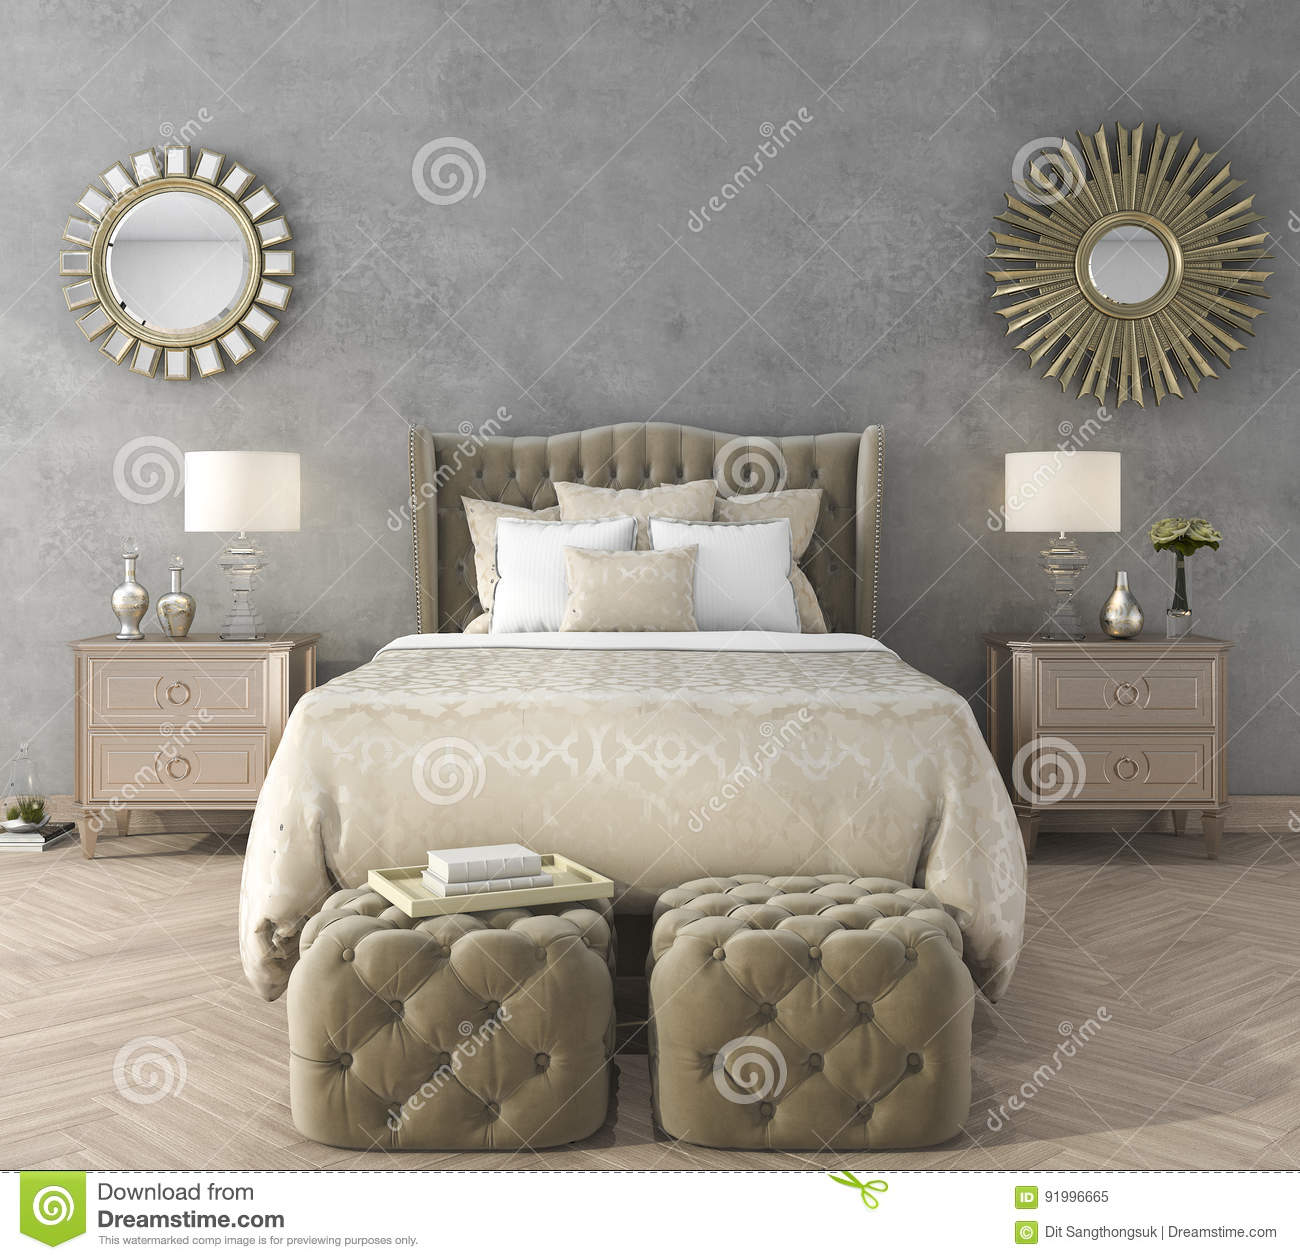 3d Rendering Classic Luxury Bedroom With Pouf And Mirror And ...